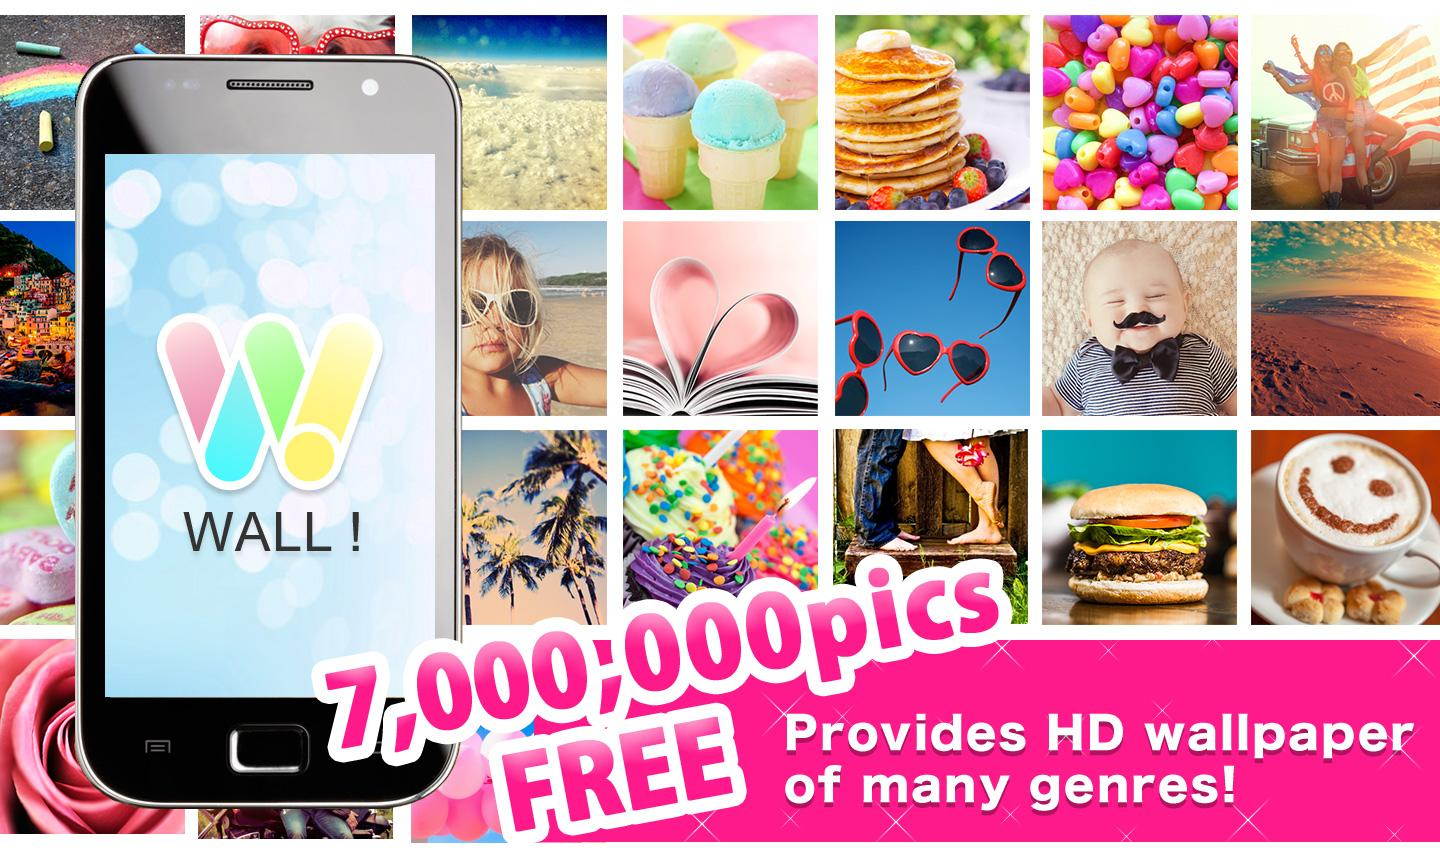 Wall free hd wallpapers android apps on google play for Picture on wall app